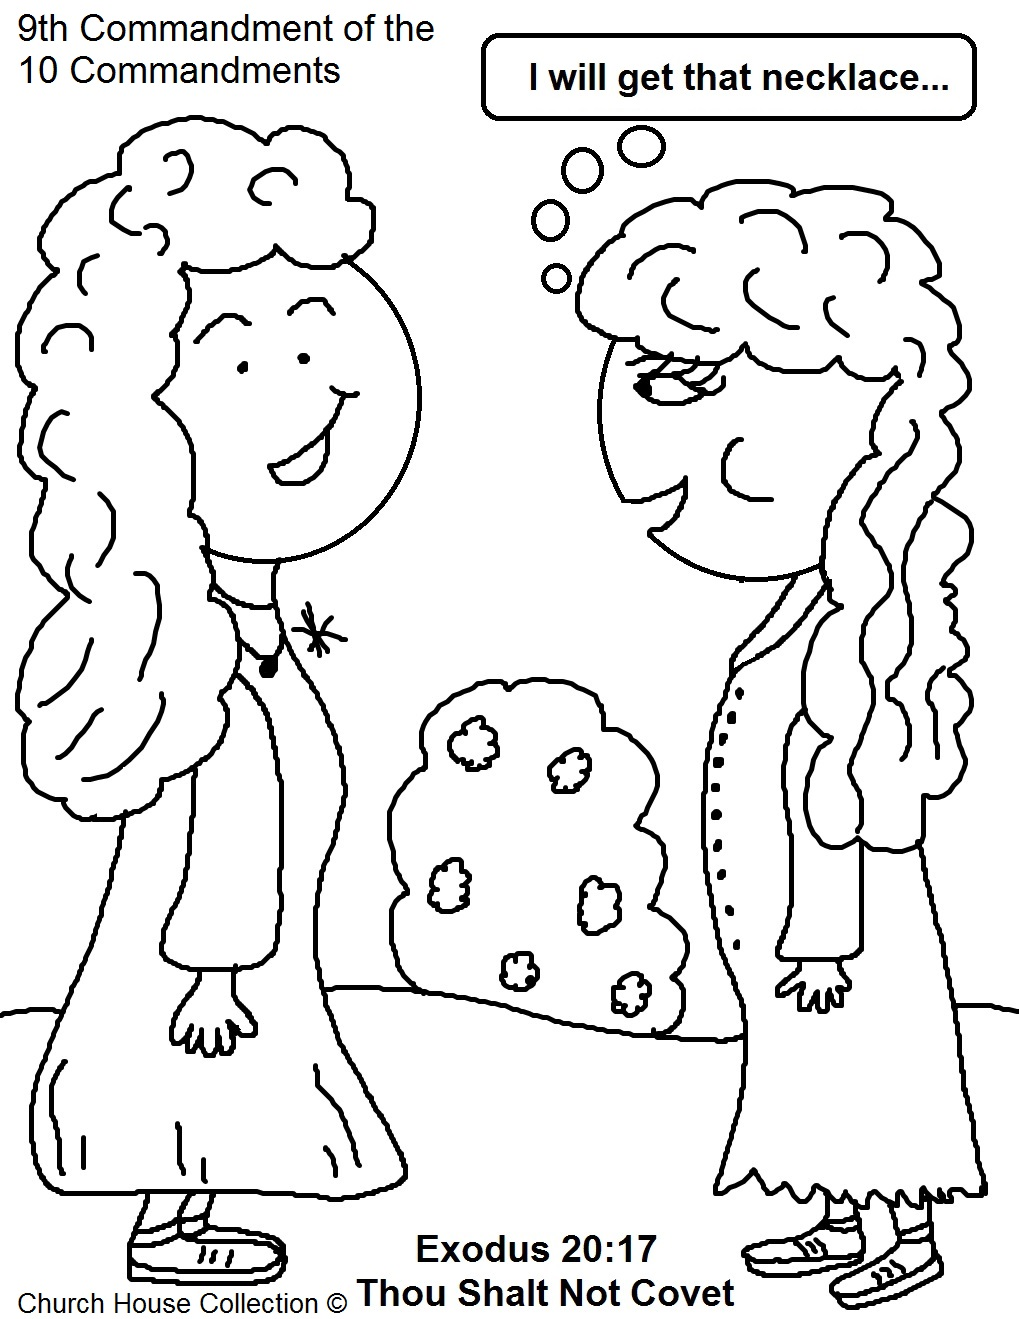 bible coloring pages for toddlers - Bible-Based Sunday School Coloring Pages for Children